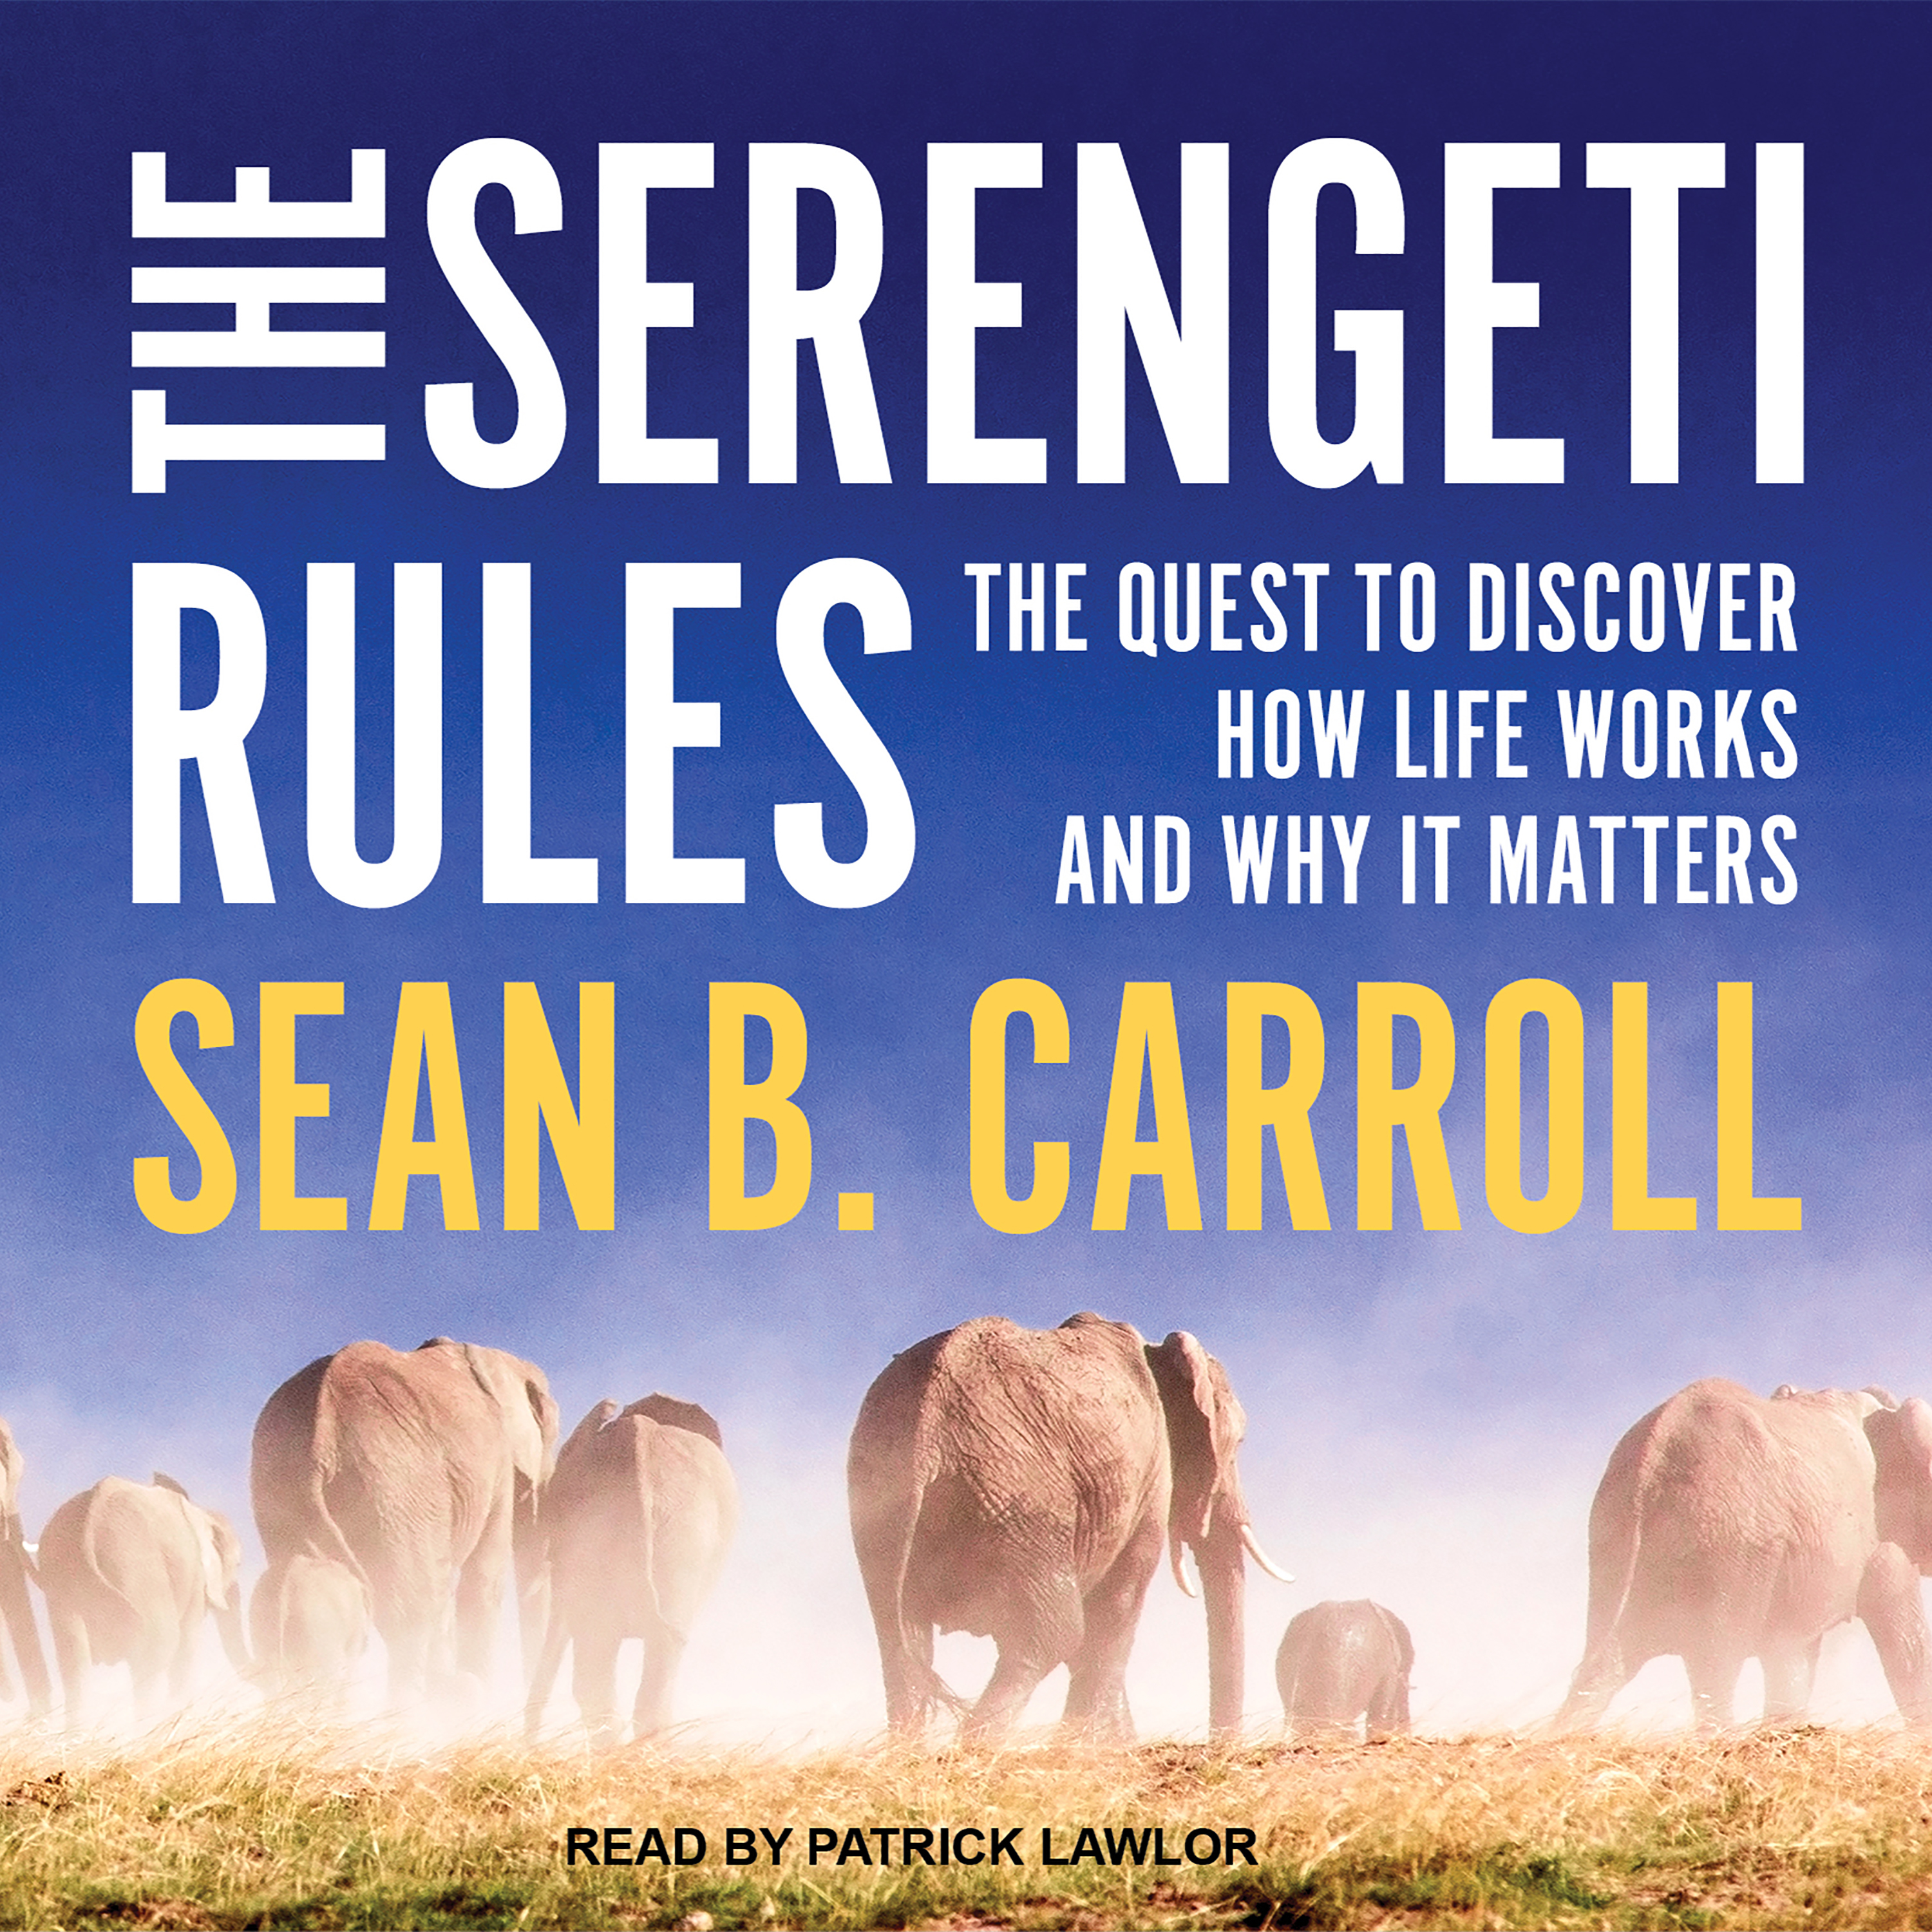 Printable The Serengeti Rules: The Quest to Discover How Life Works and Why It Matters Audiobook Cover Art